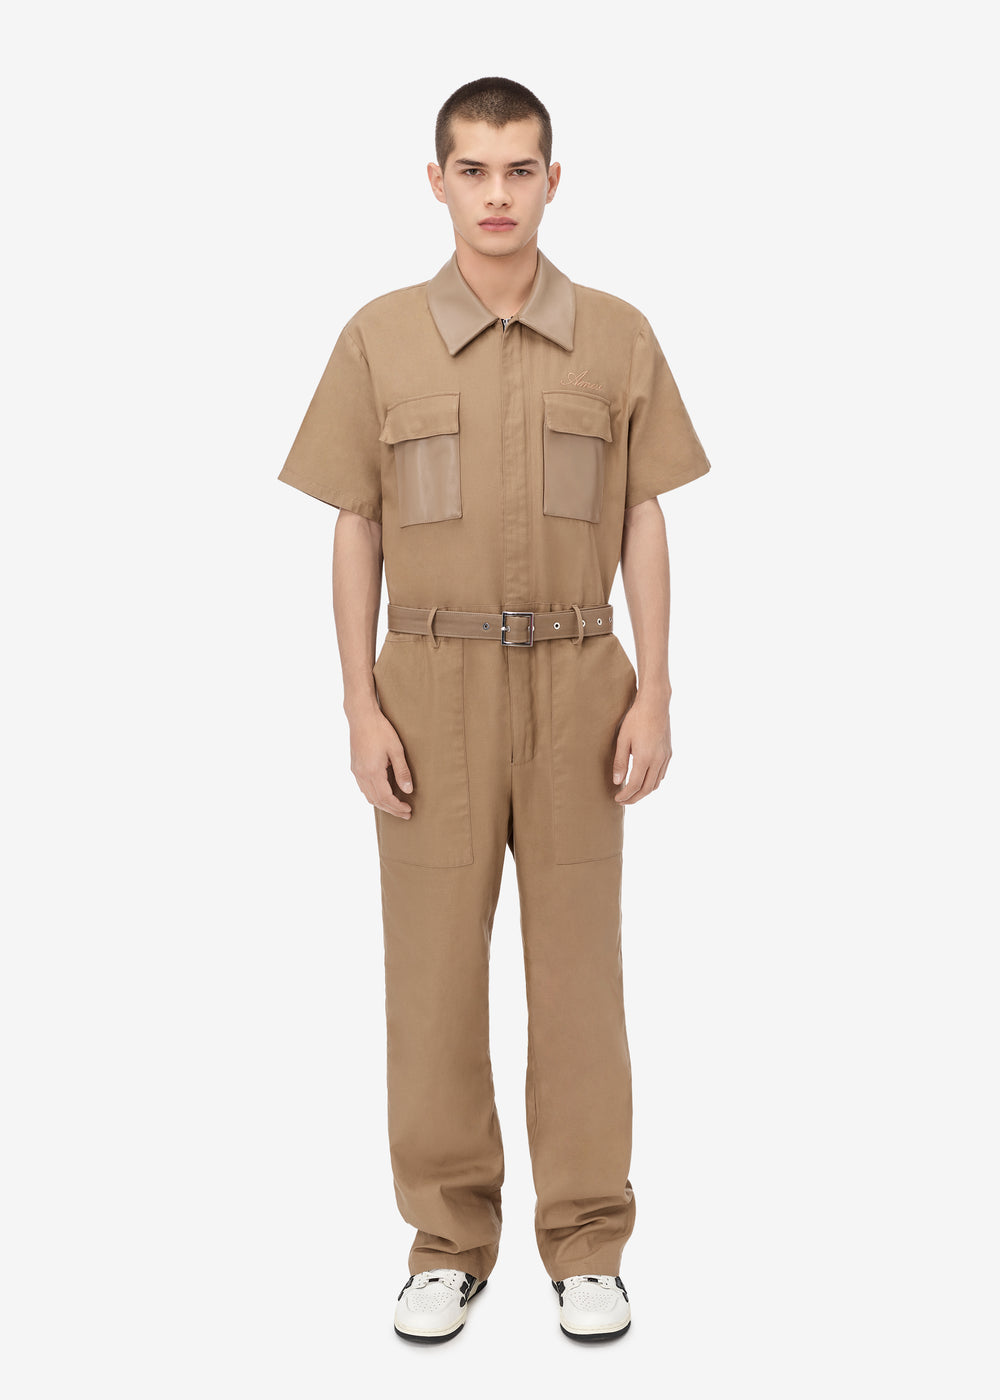 BOILER SUIT - Brown